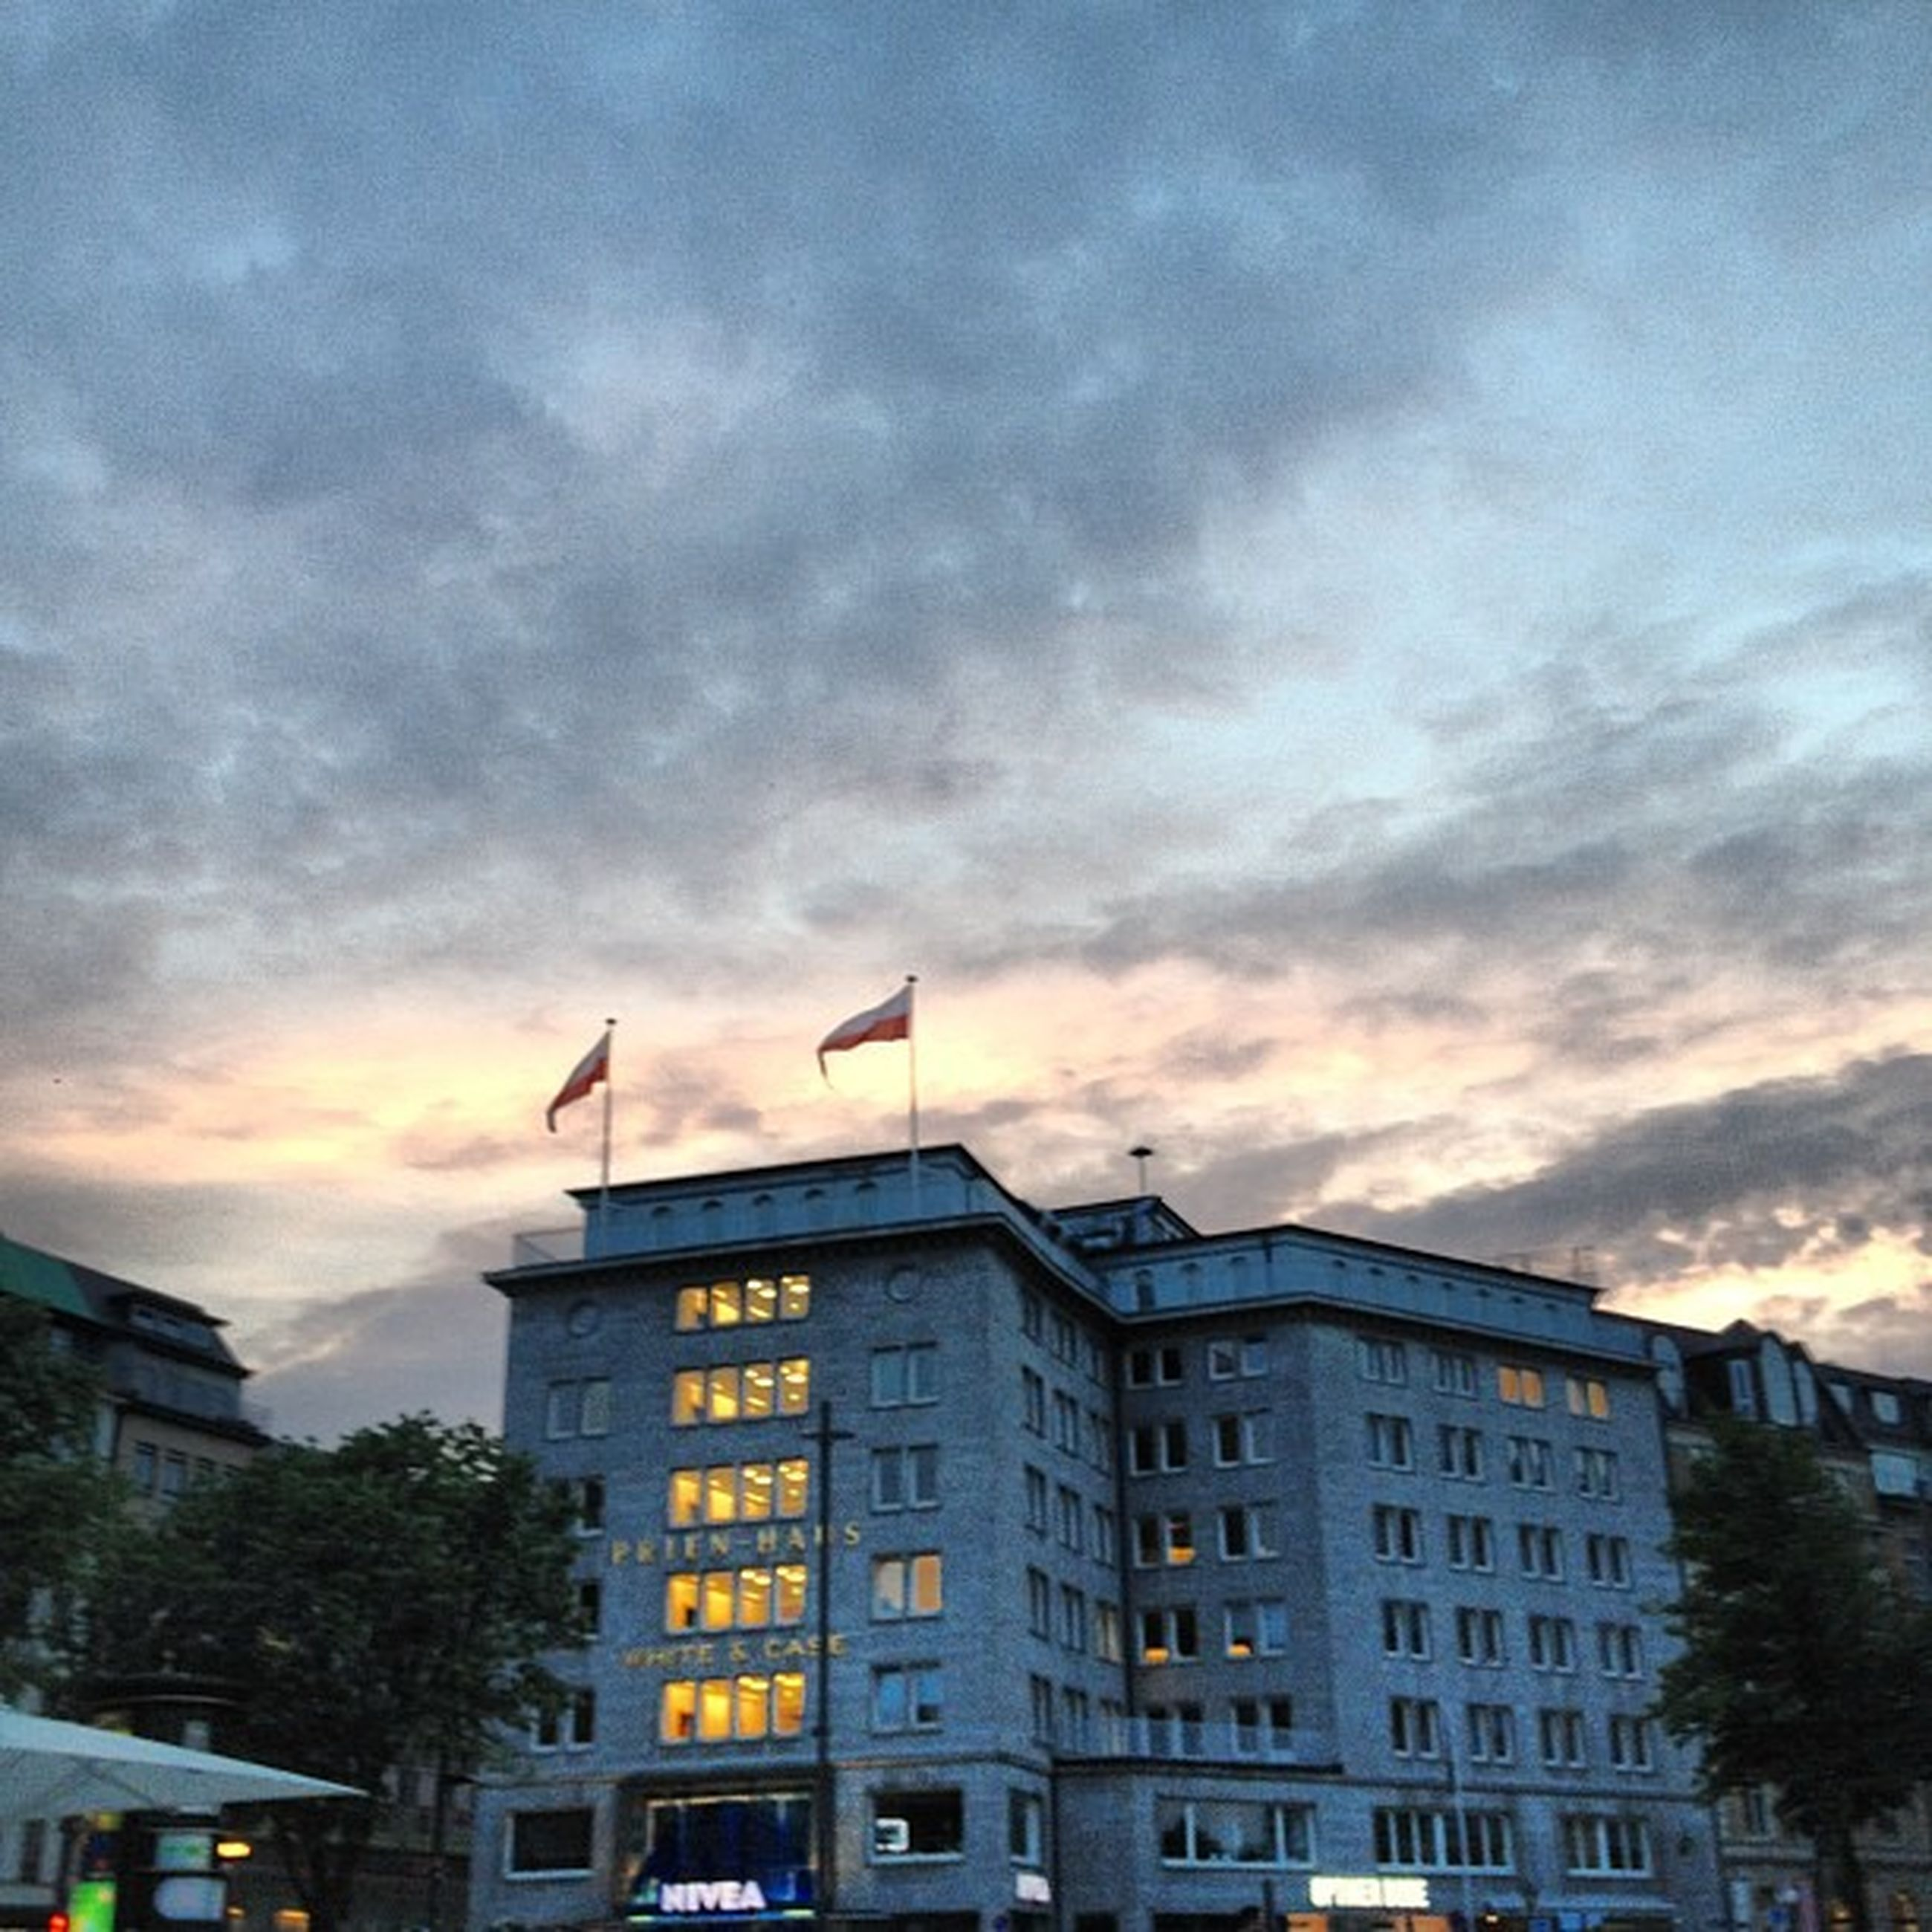 building exterior, architecture, built structure, city, sky, cloud - sky, residential building, cloudy, building, sunset, low angle view, residential structure, cloud, city life, cityscape, residential district, outdoors, no people, overcast, dusk